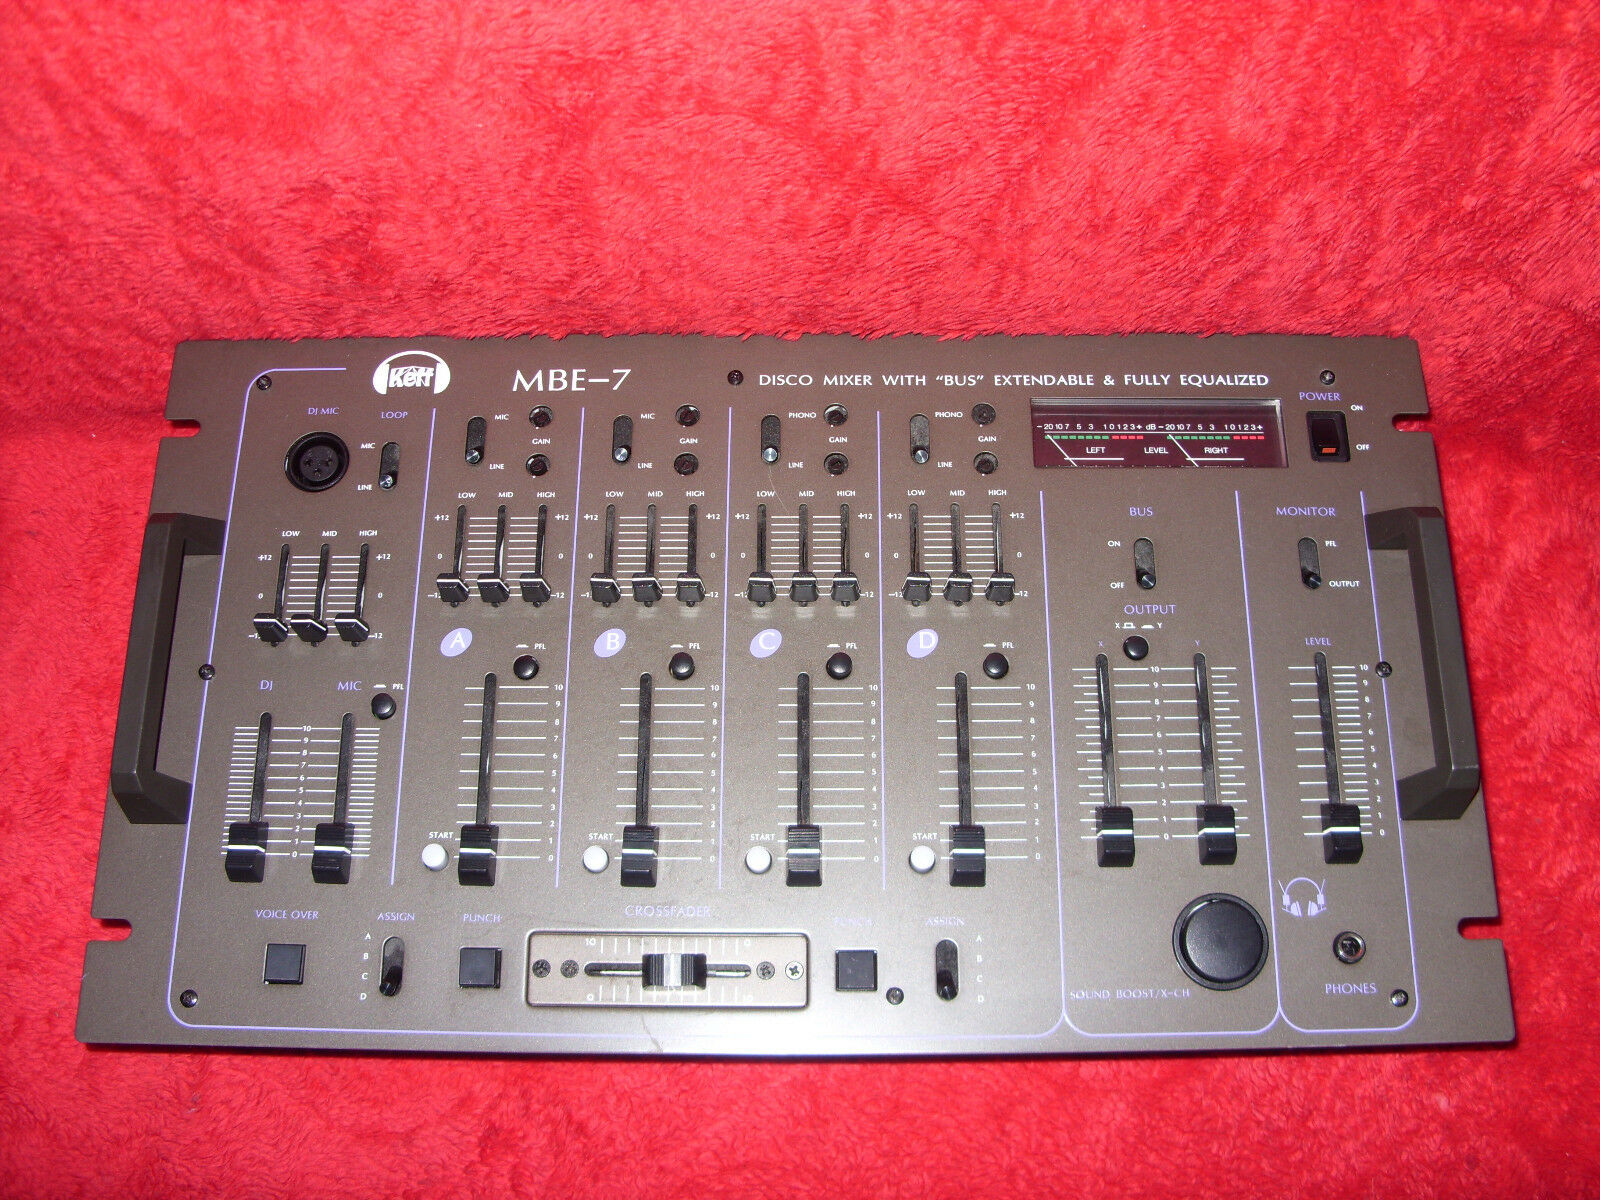 Keff MBE-7 Disco Mixer With Bus Extendable & Fully Equalized